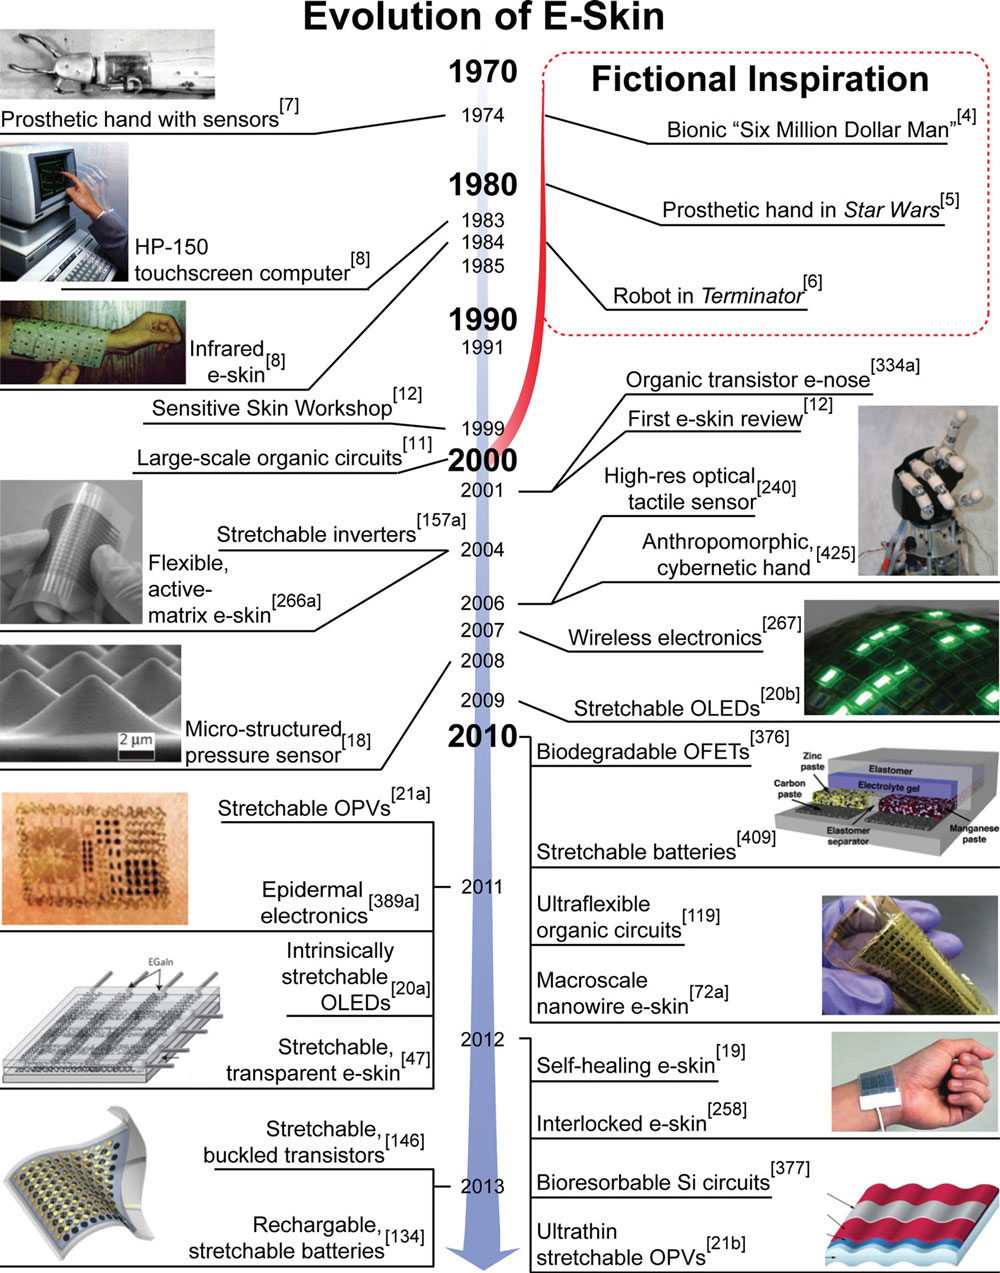 Electronic Skin,Diagnosis,Robots That Can Feel Touch,Sci & Tech,Technology,Medicine,nanowire transistors